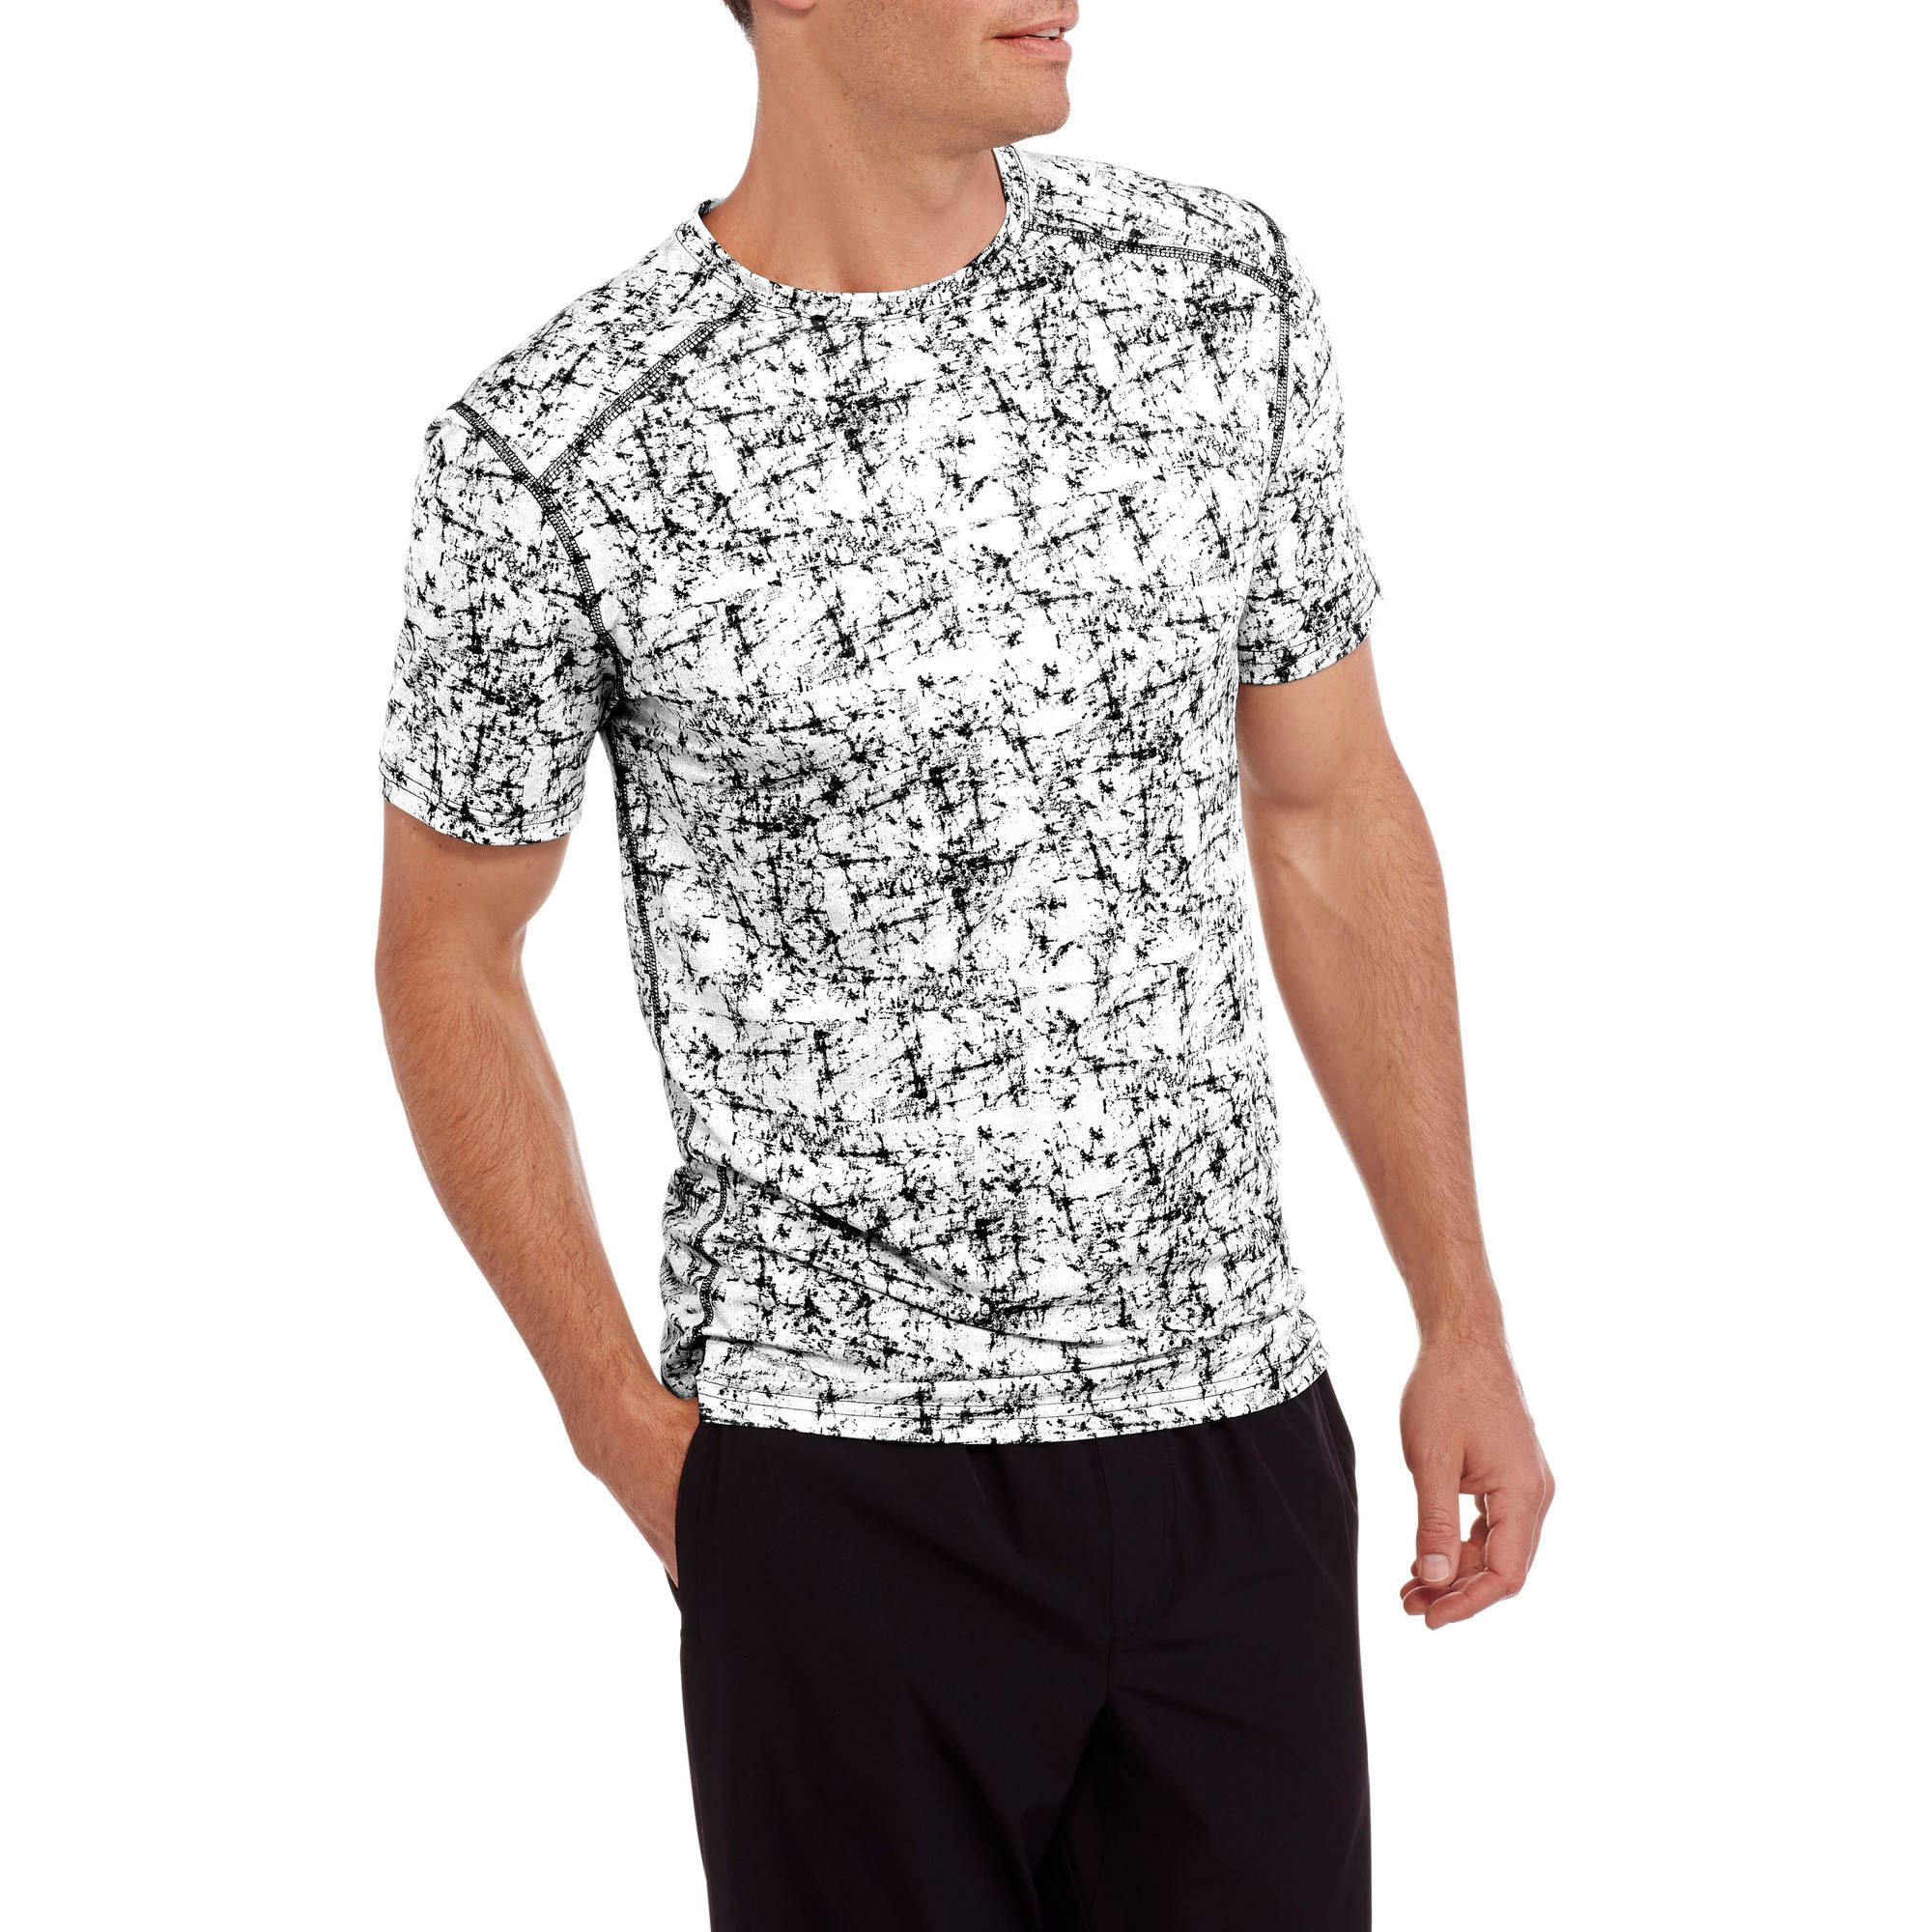 Russell Big Men's Performance Texture Printed Crew Tee